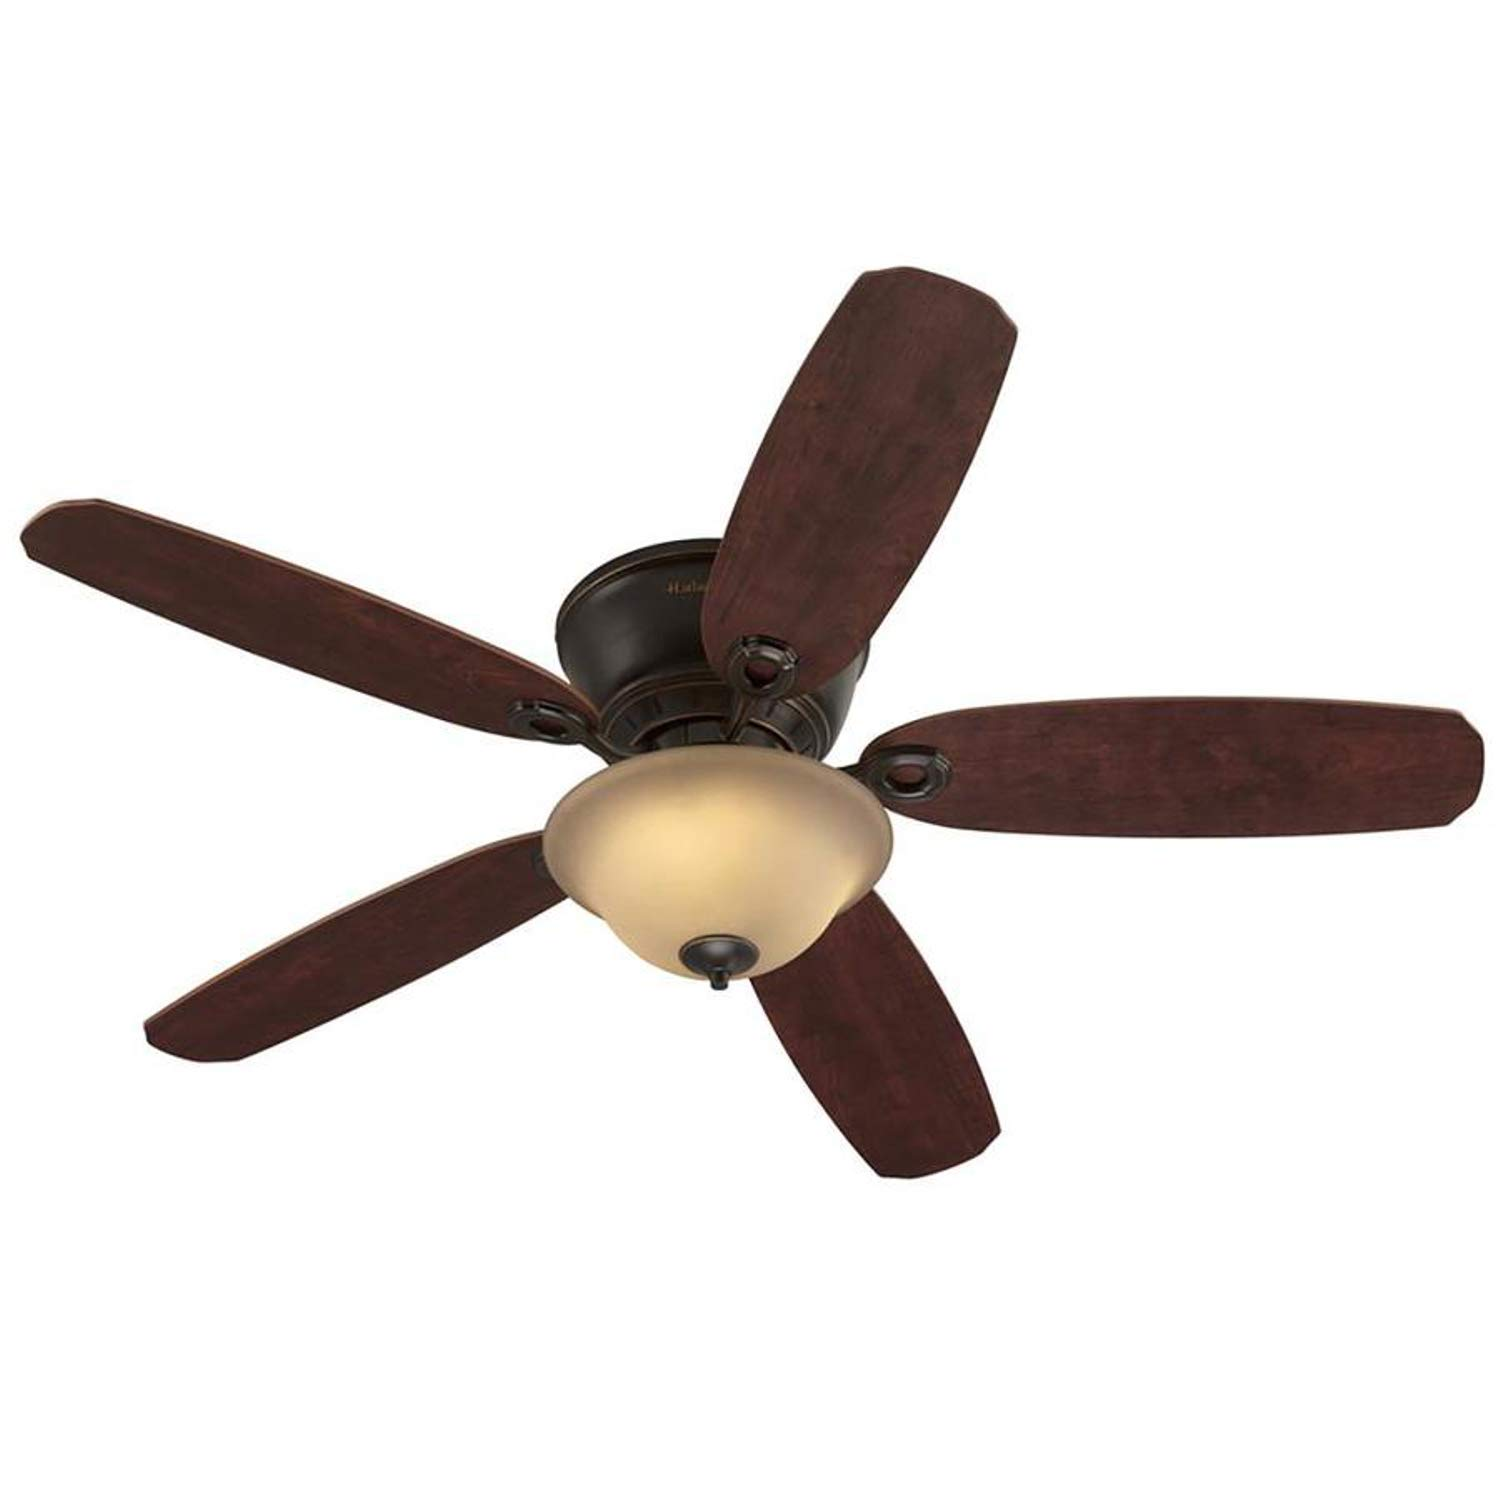 Harbor Breeze 40305 Pawtucket 52-in Oil Rubbed Bronze Indoor Flush Mount Ceiling Fan with Light Kit and Remote